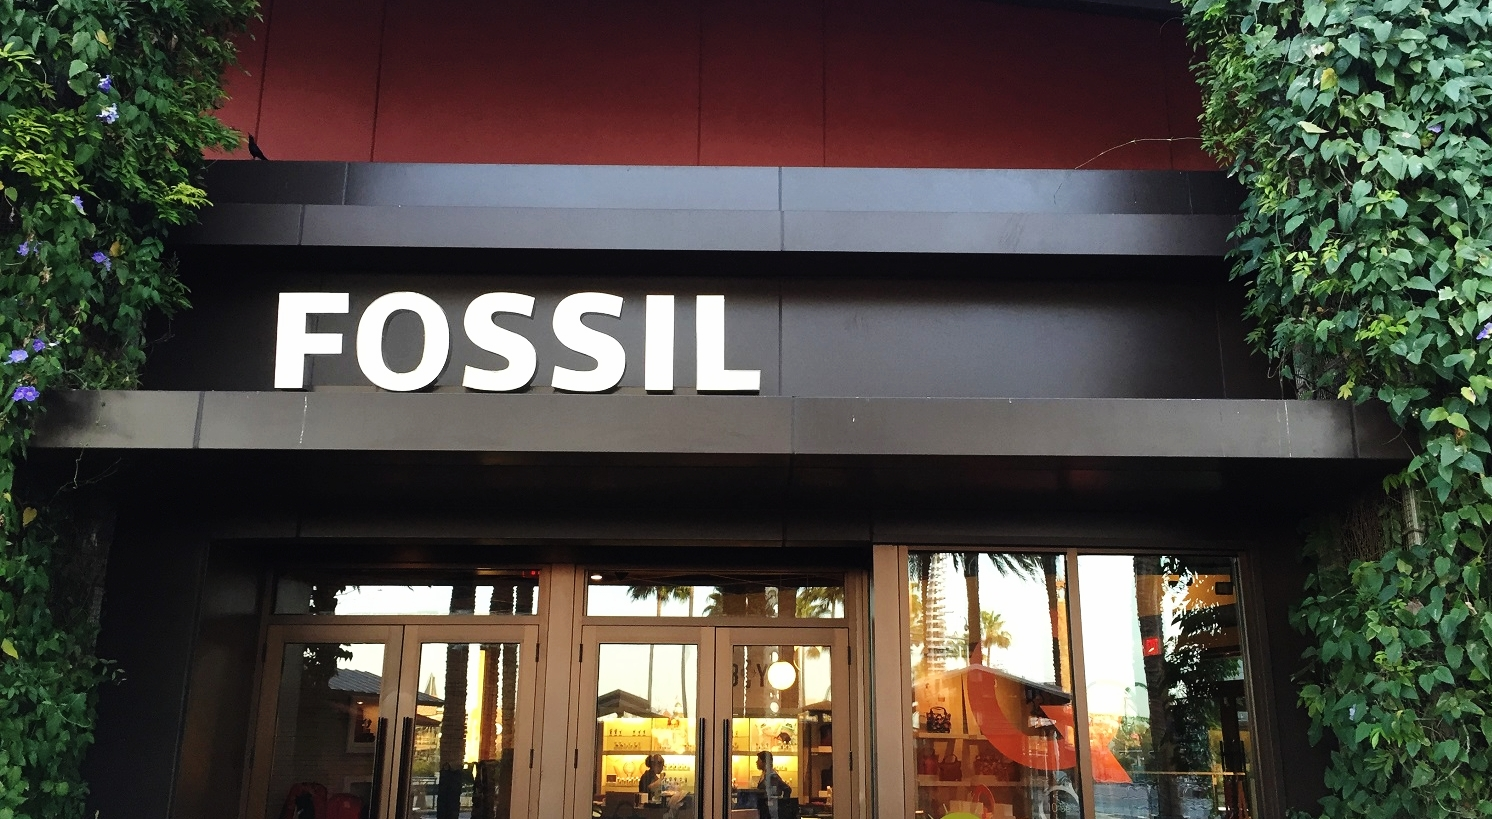 The Fossil store in Universal CityWalk Orlando.